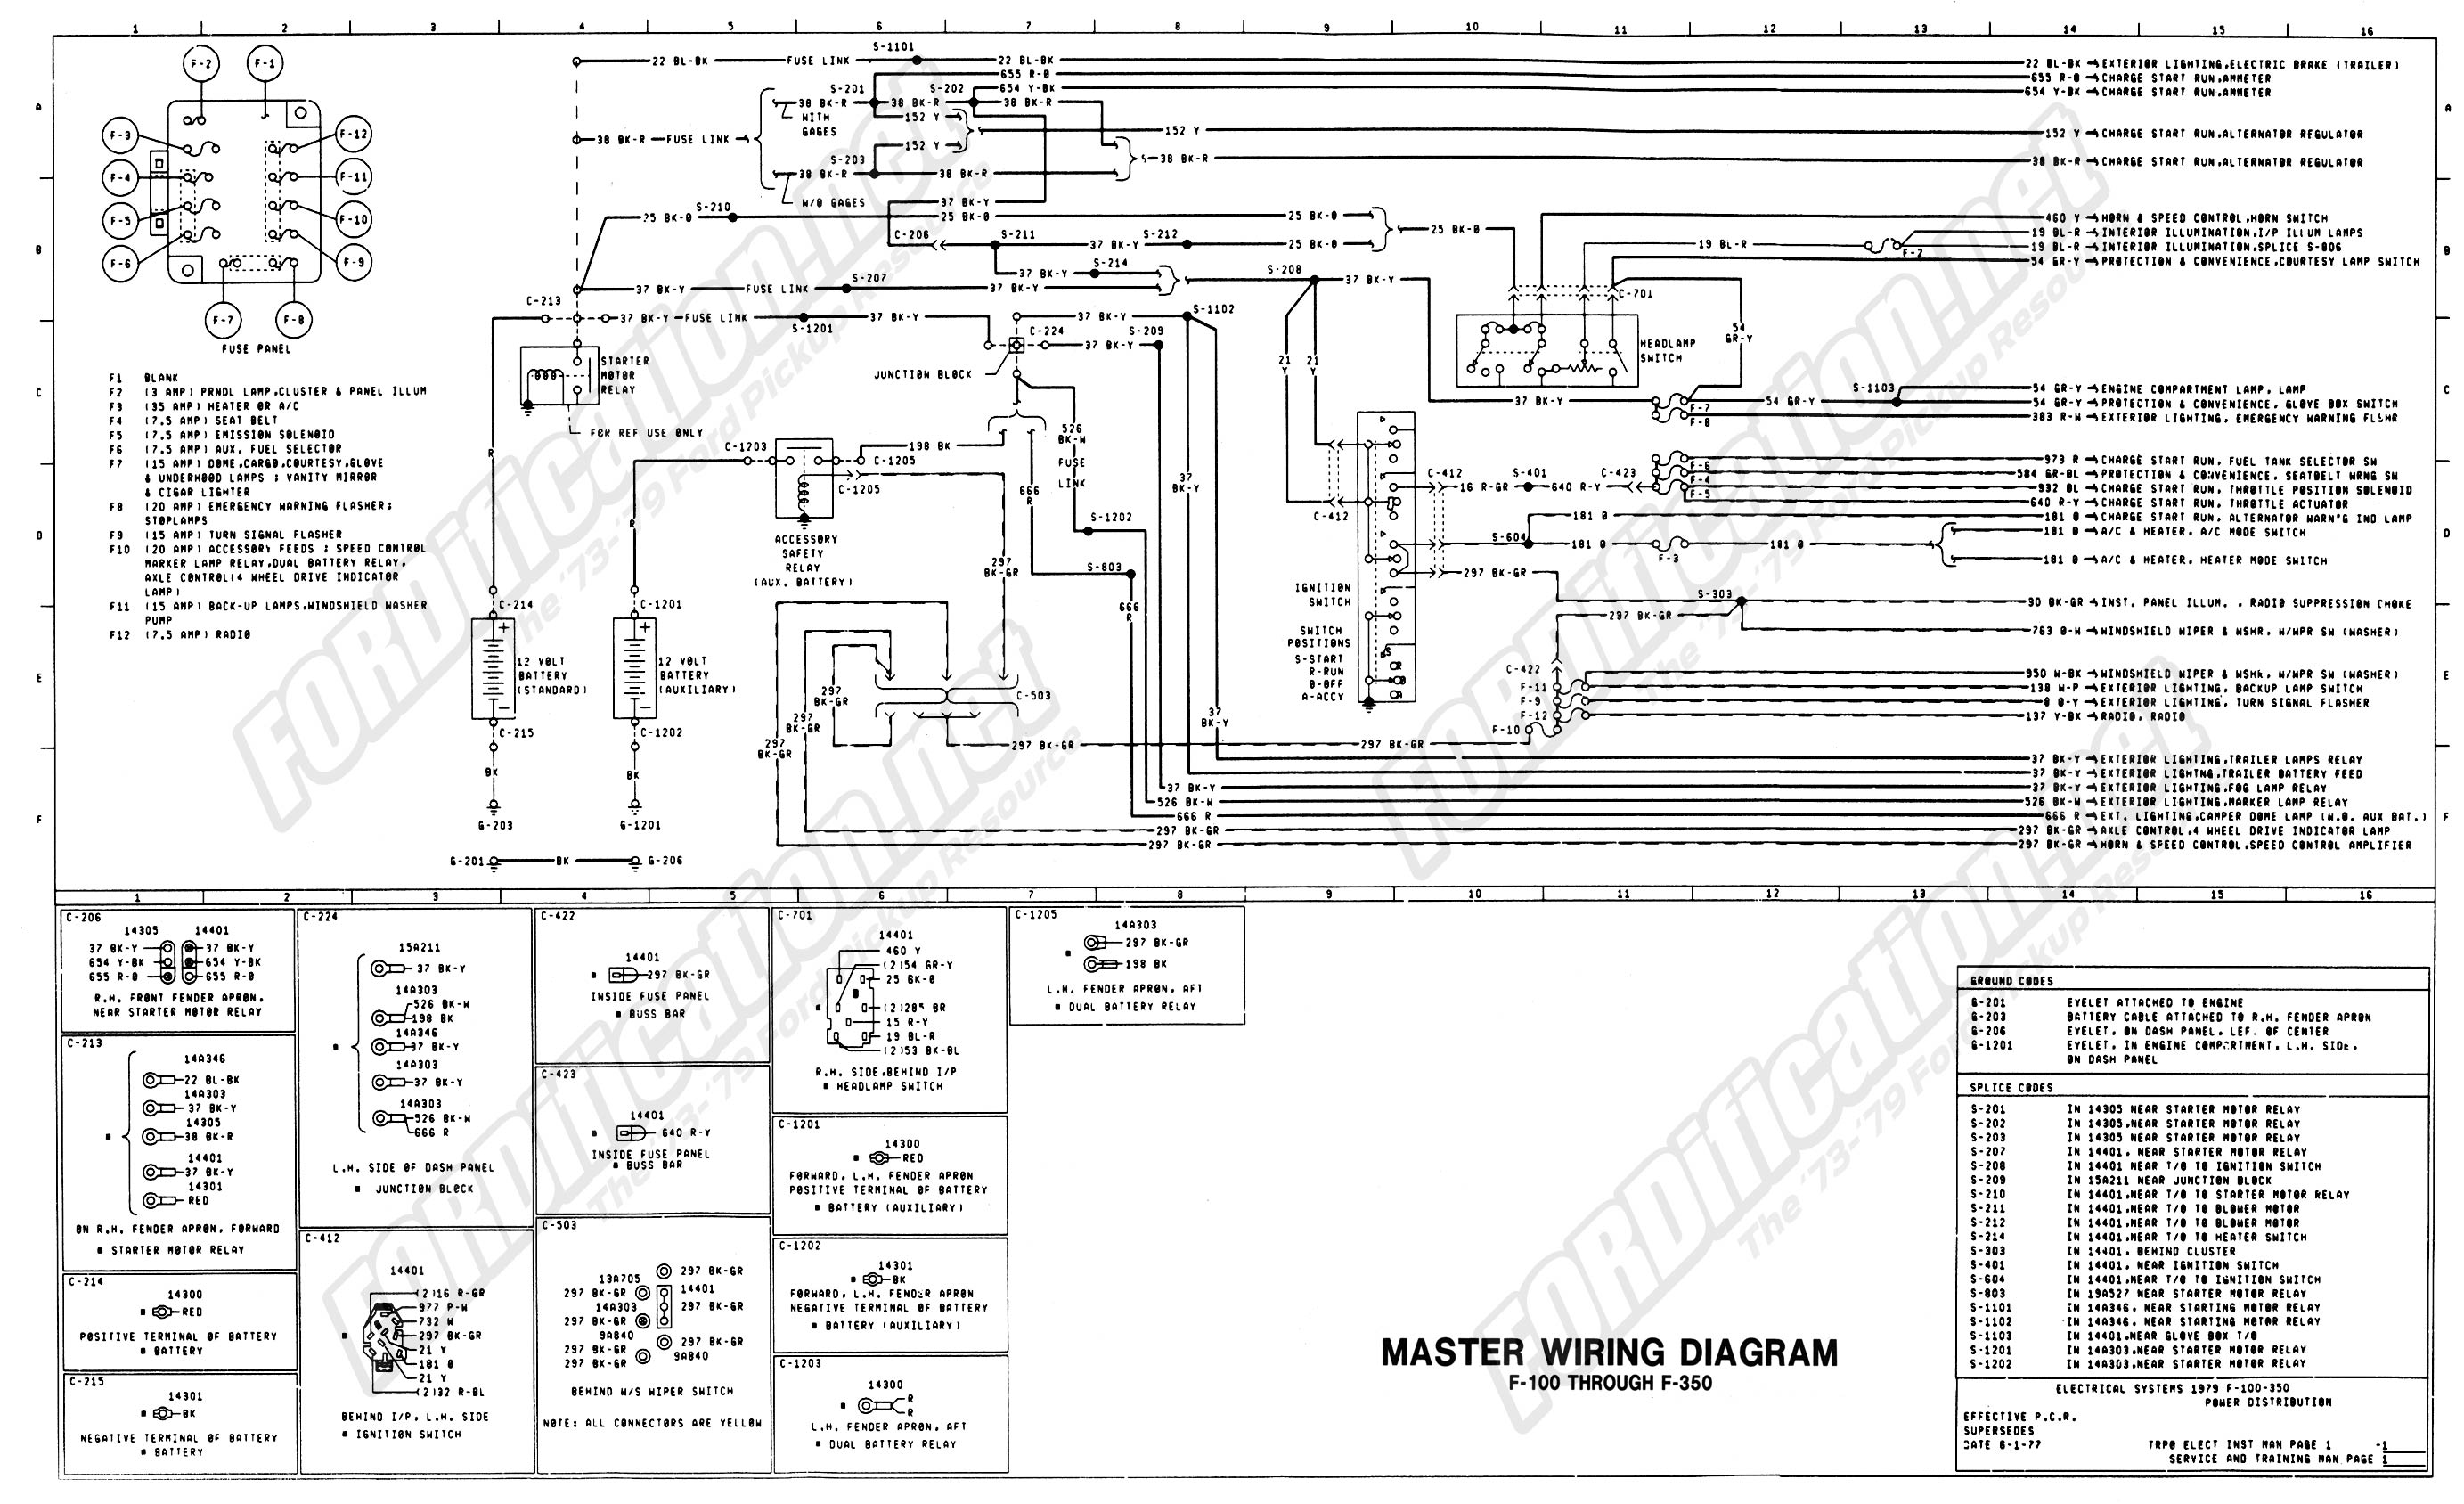 wiring_79master_1of9 1973 1979 ford truck wiring diagrams & schematics fordification net 1979 ford f100 fuse box diagram at reclaimingppi.co